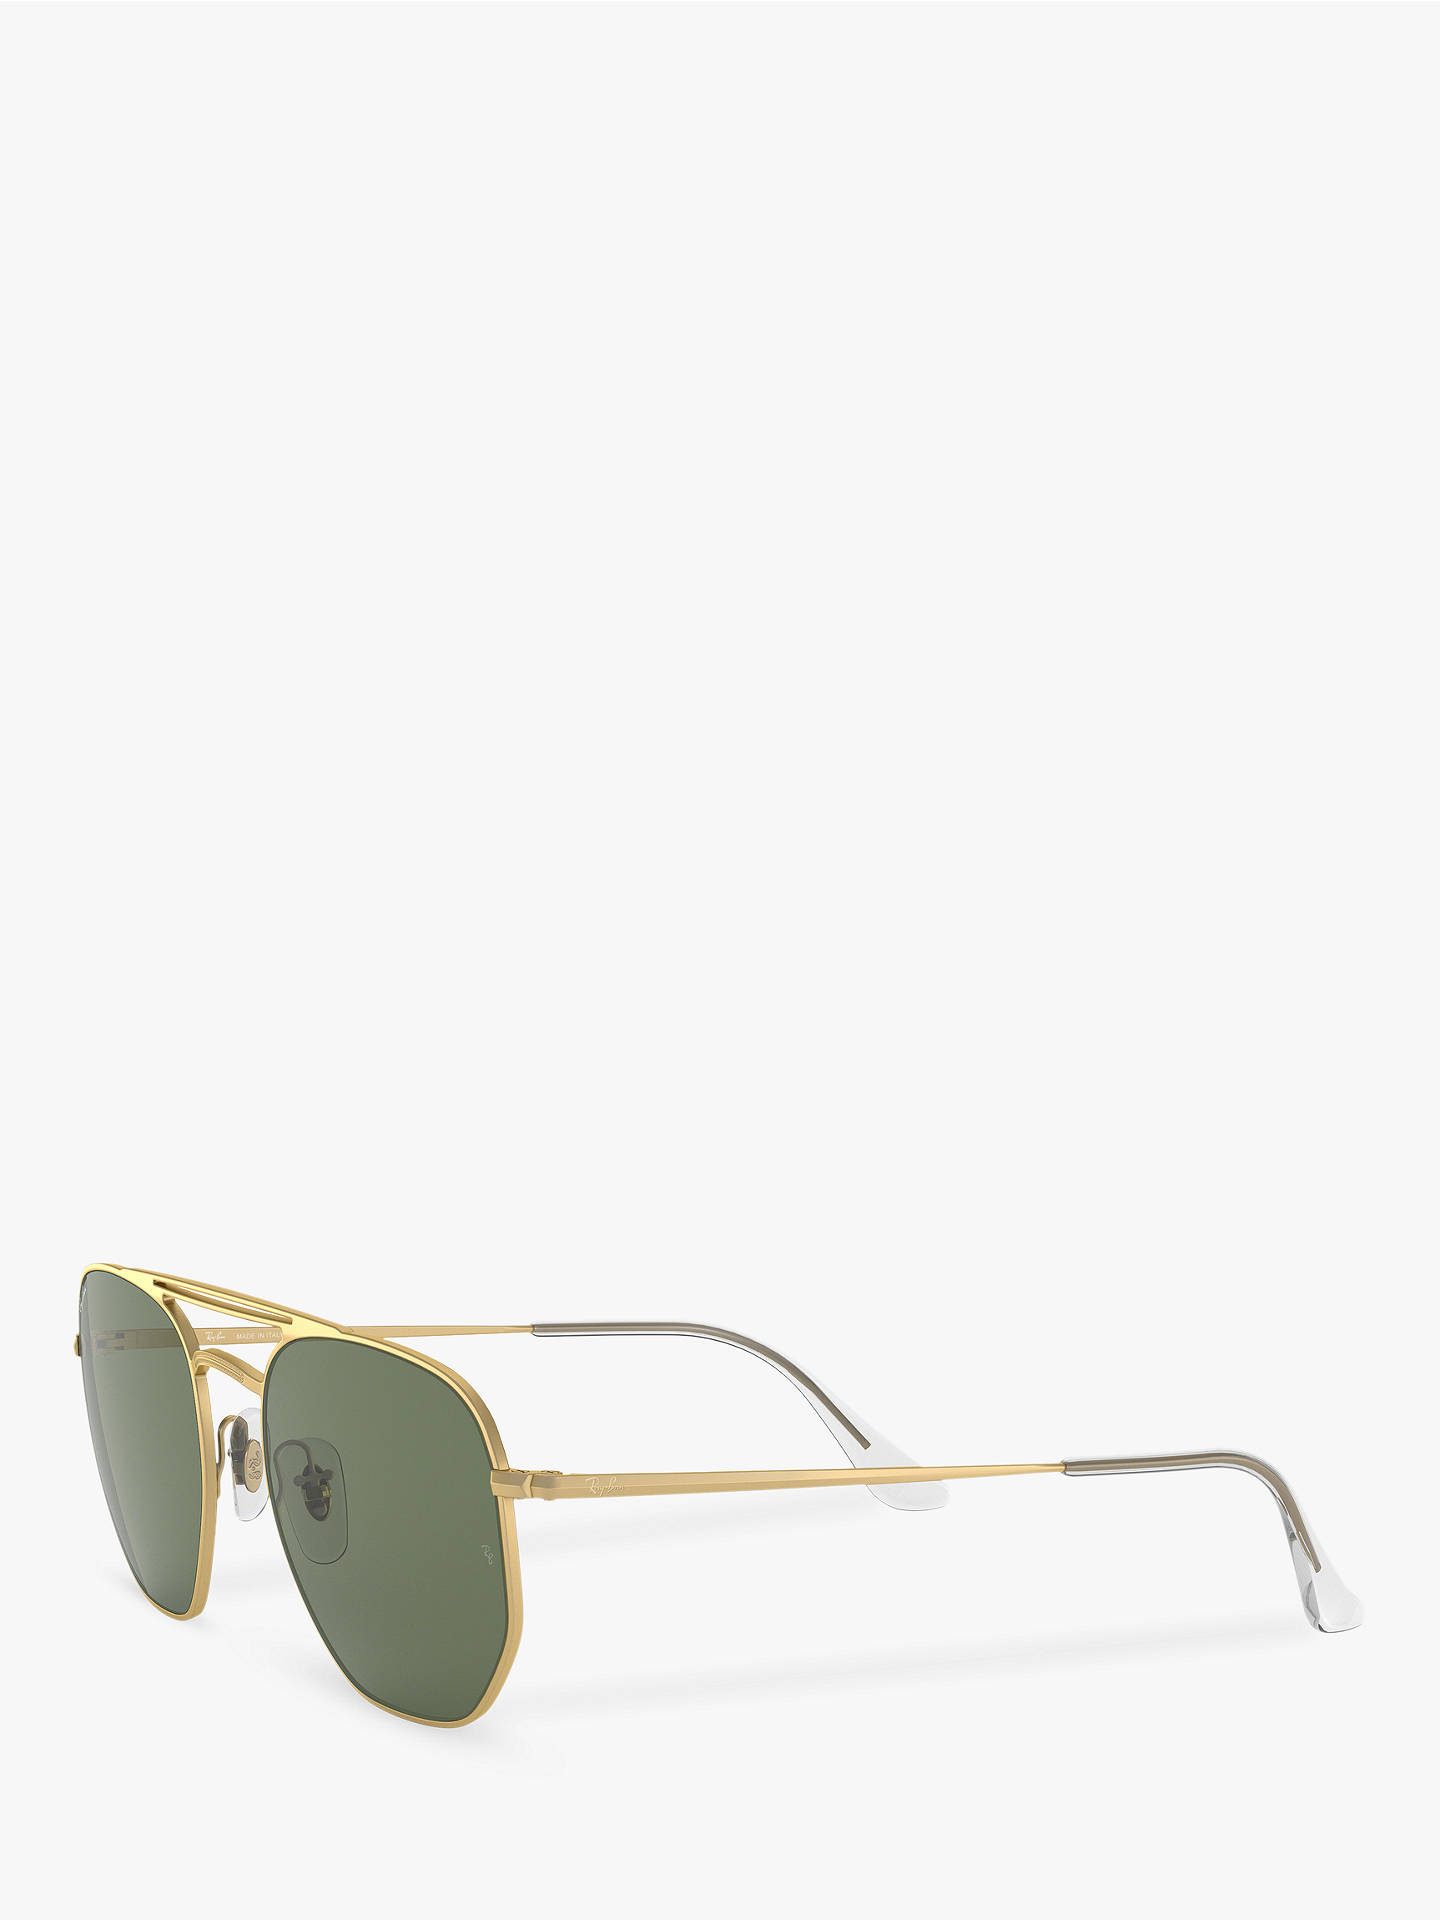 BuyRay-Ban RB3609 Unisex Square Sunglasses, Gloss Gold/Green Online at johnlewis.com